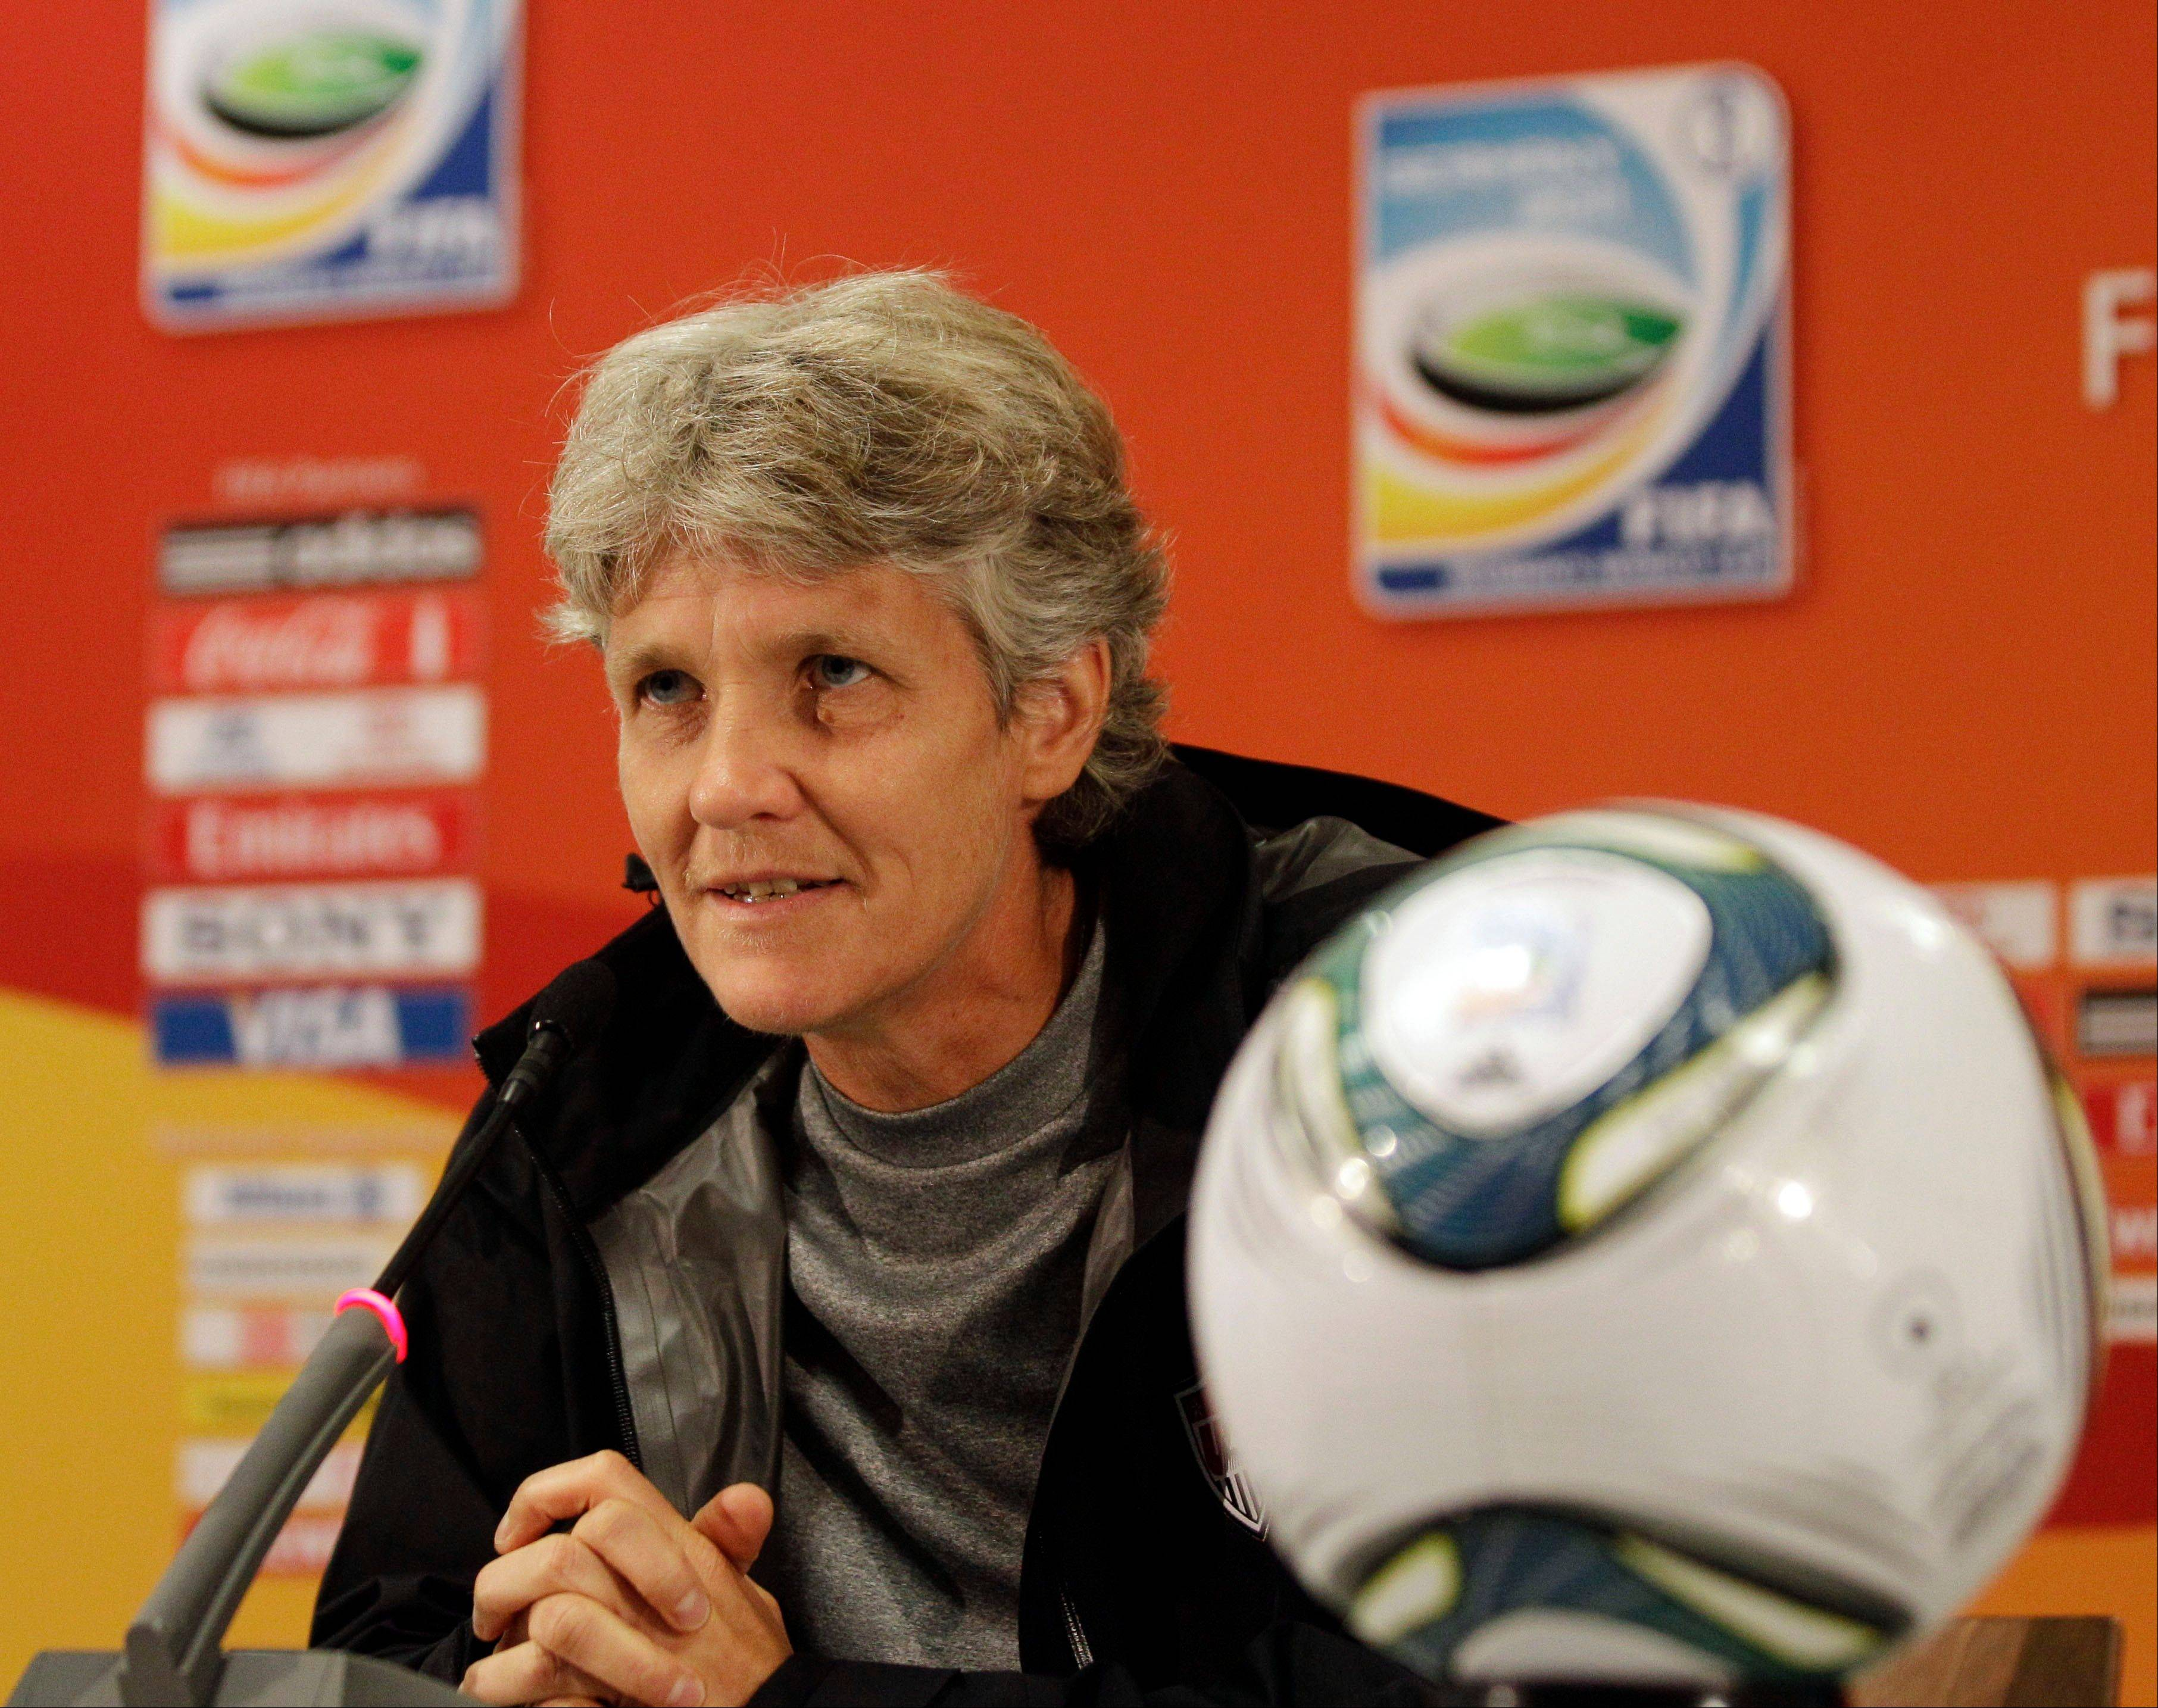 United States head coach Pia Sundhage talks to the media Saturday during a training session in preparation for Sunday's final match against Japan of the Women's Soccer World Cup in Frankfurt, Germany.